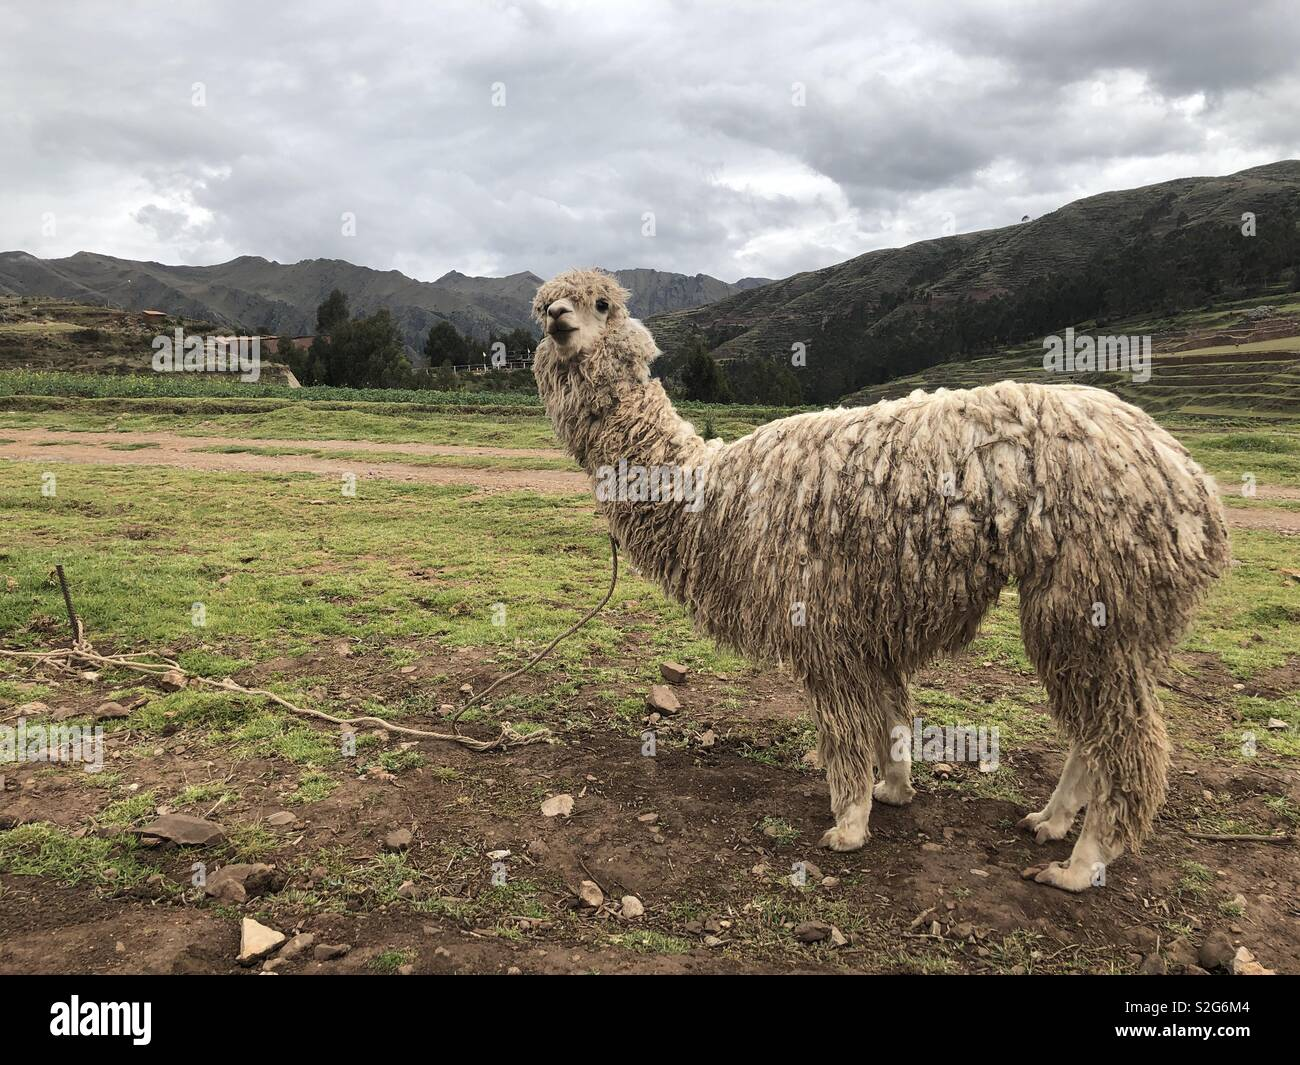 Alpaca in Peru at the mountains - Stock Image